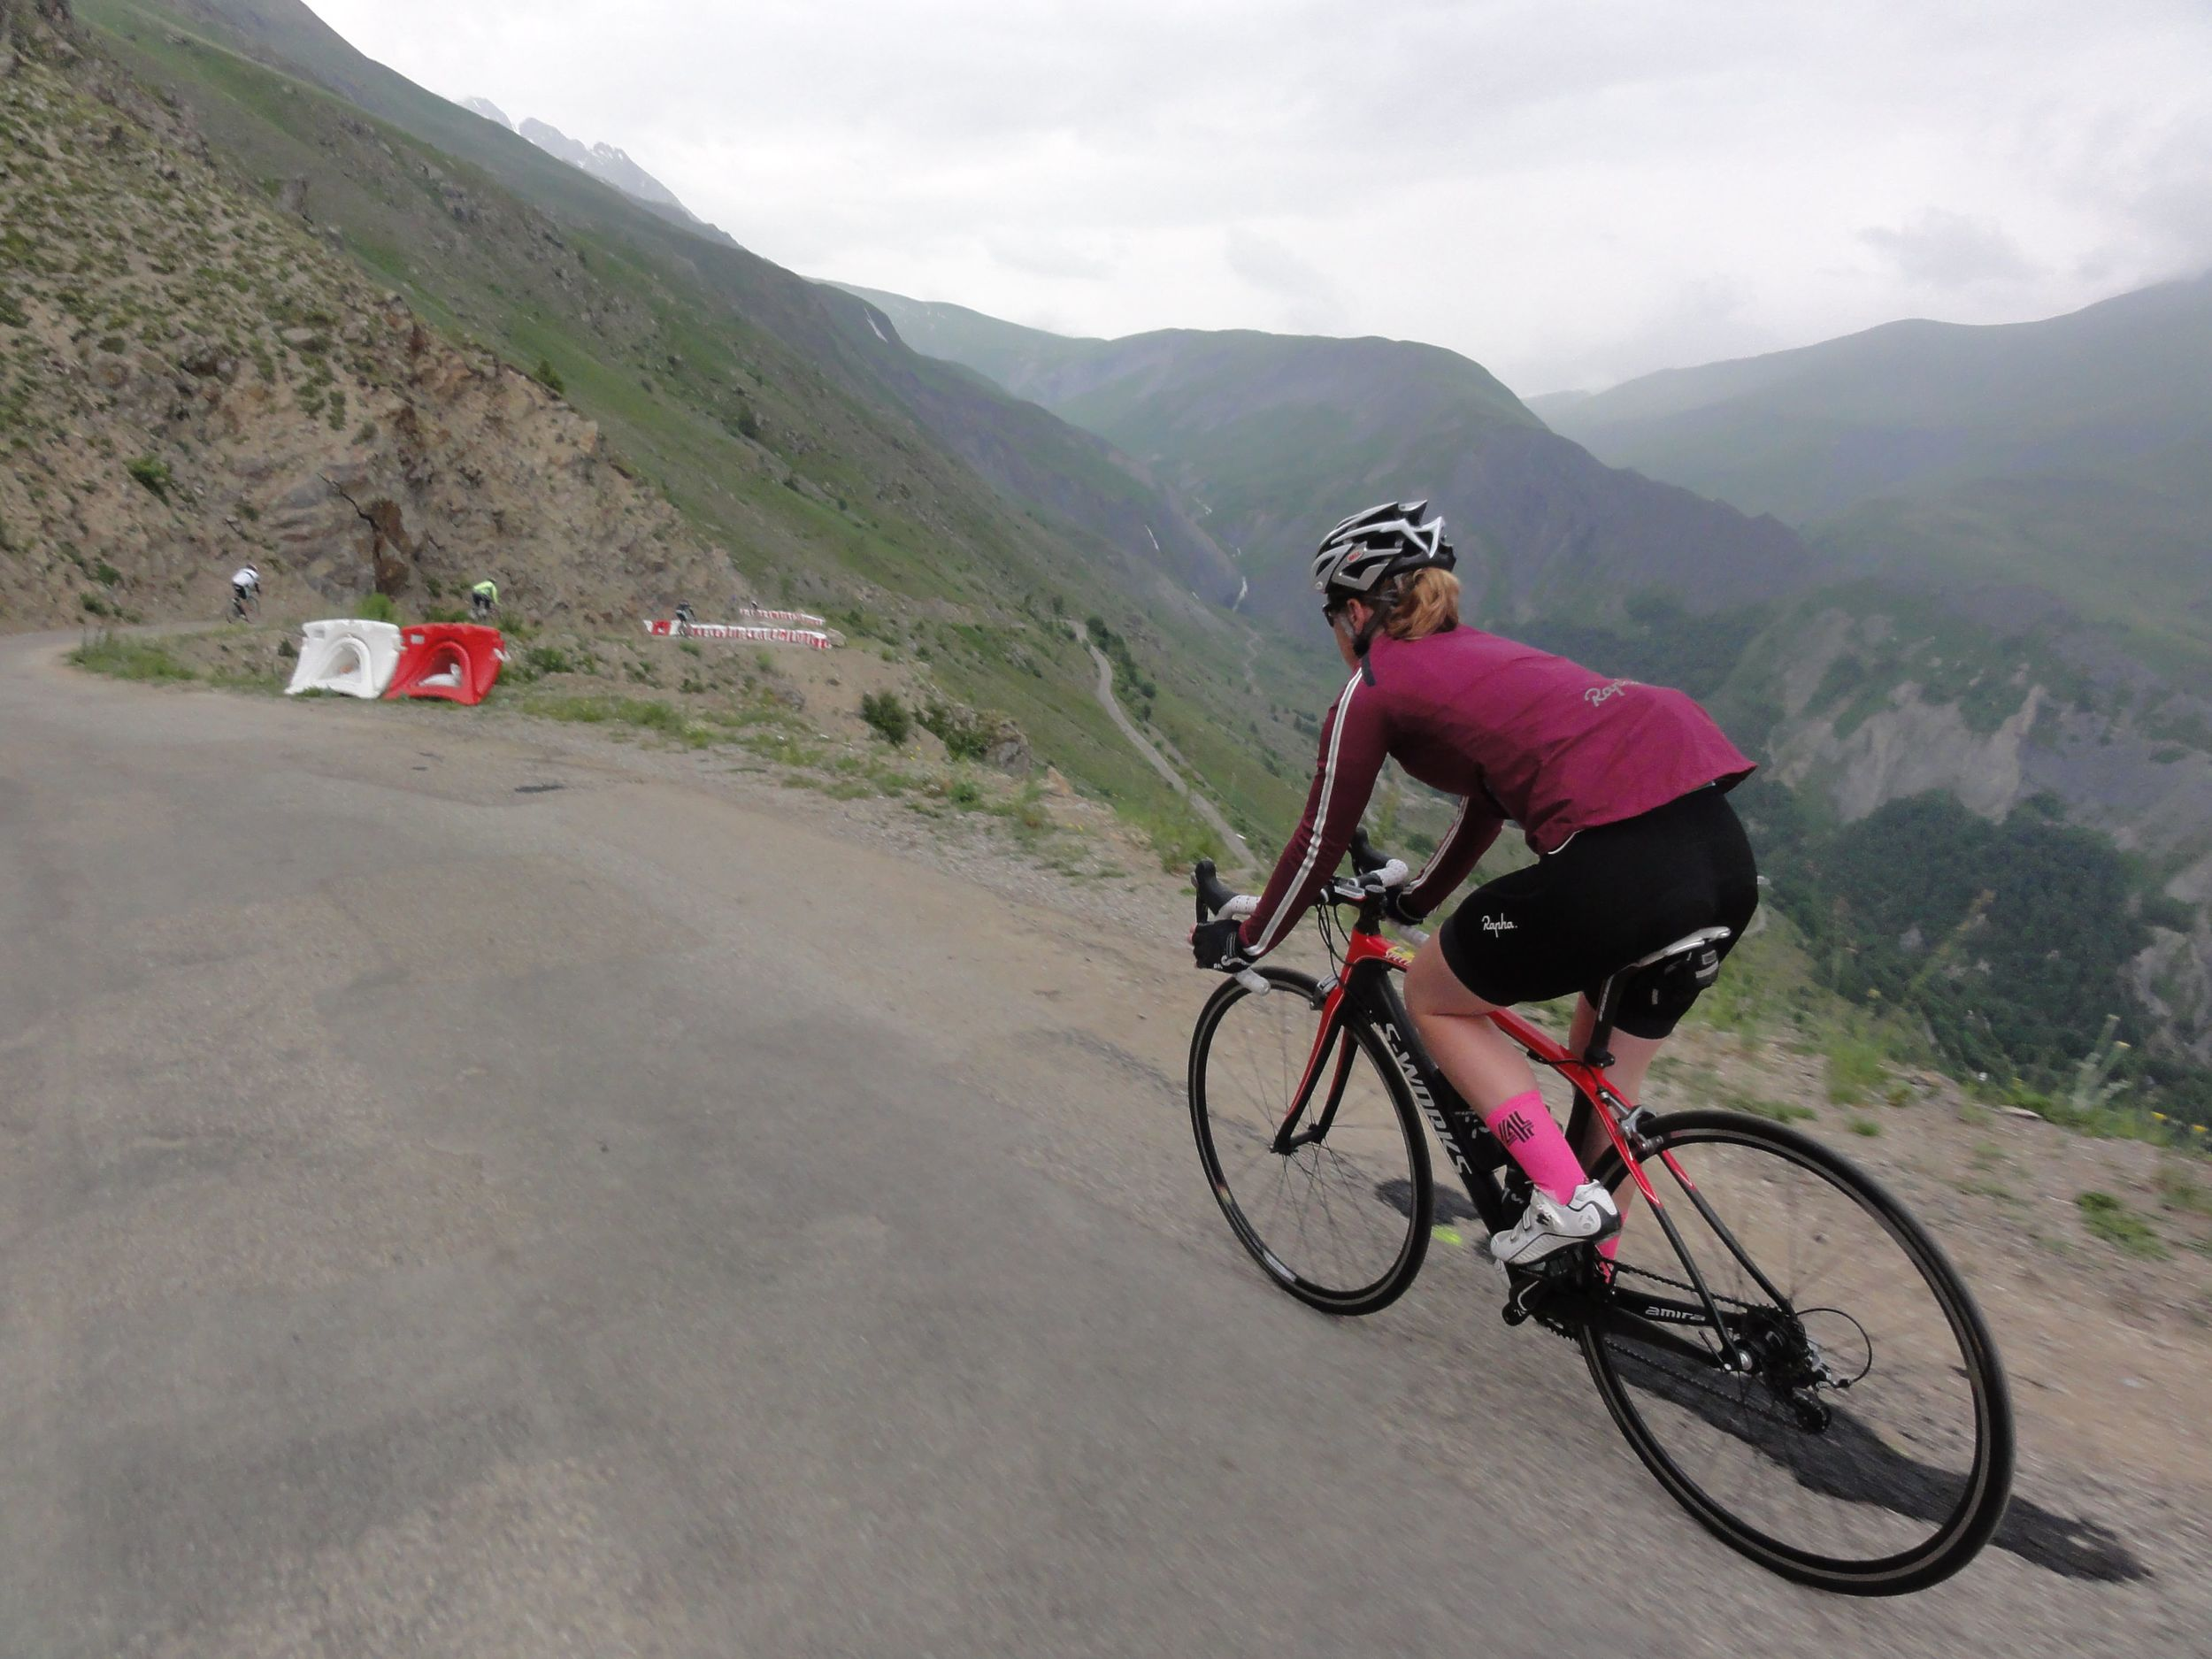 The Col de Sarenne descent is a bit like the Samford Goat Track, only steeper, faster, five times as long and rougher... scary stuff!